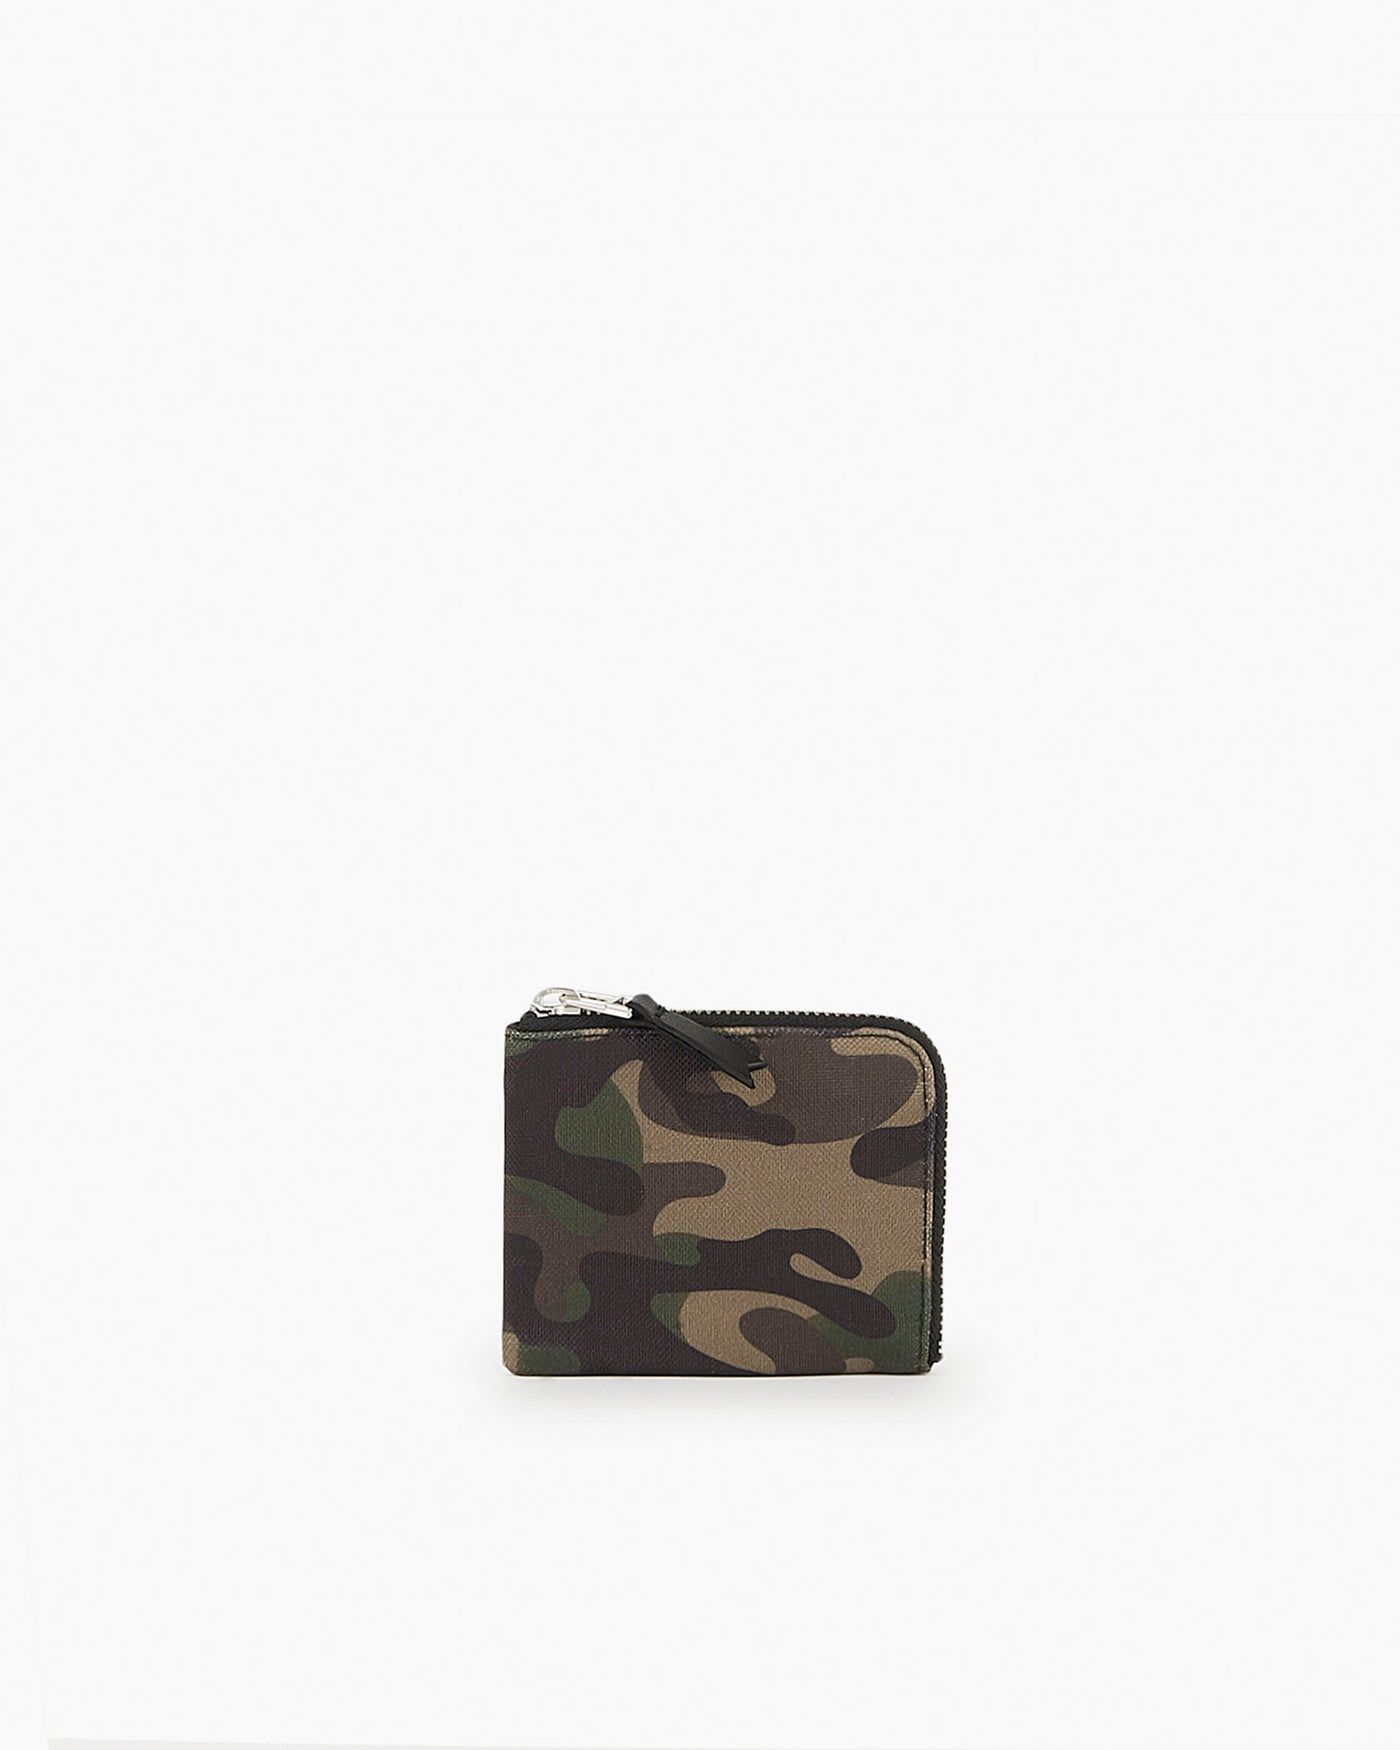 Wouf Mens Wallet - Camo